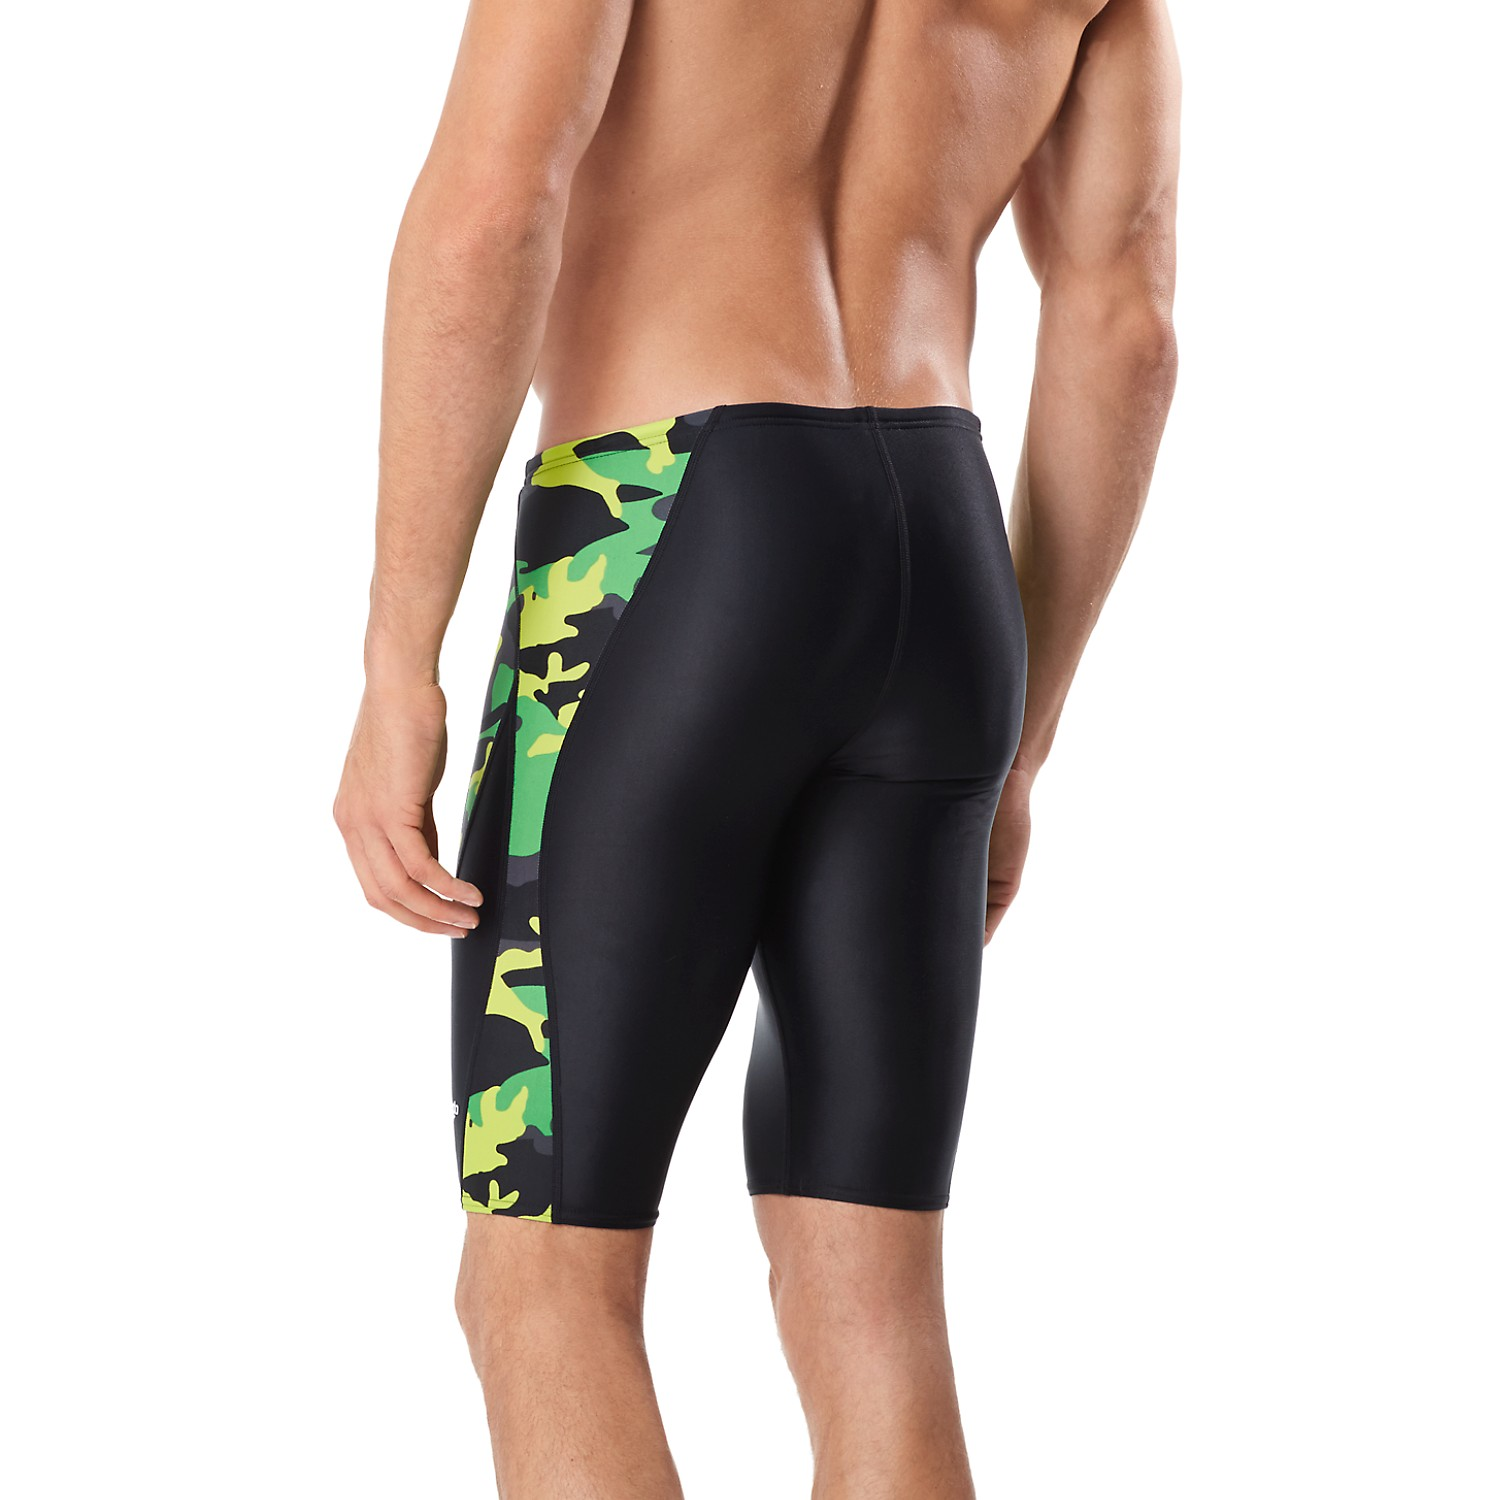 09eaface6bc32 Speedo Camo Squad Jammer - Ly Sports